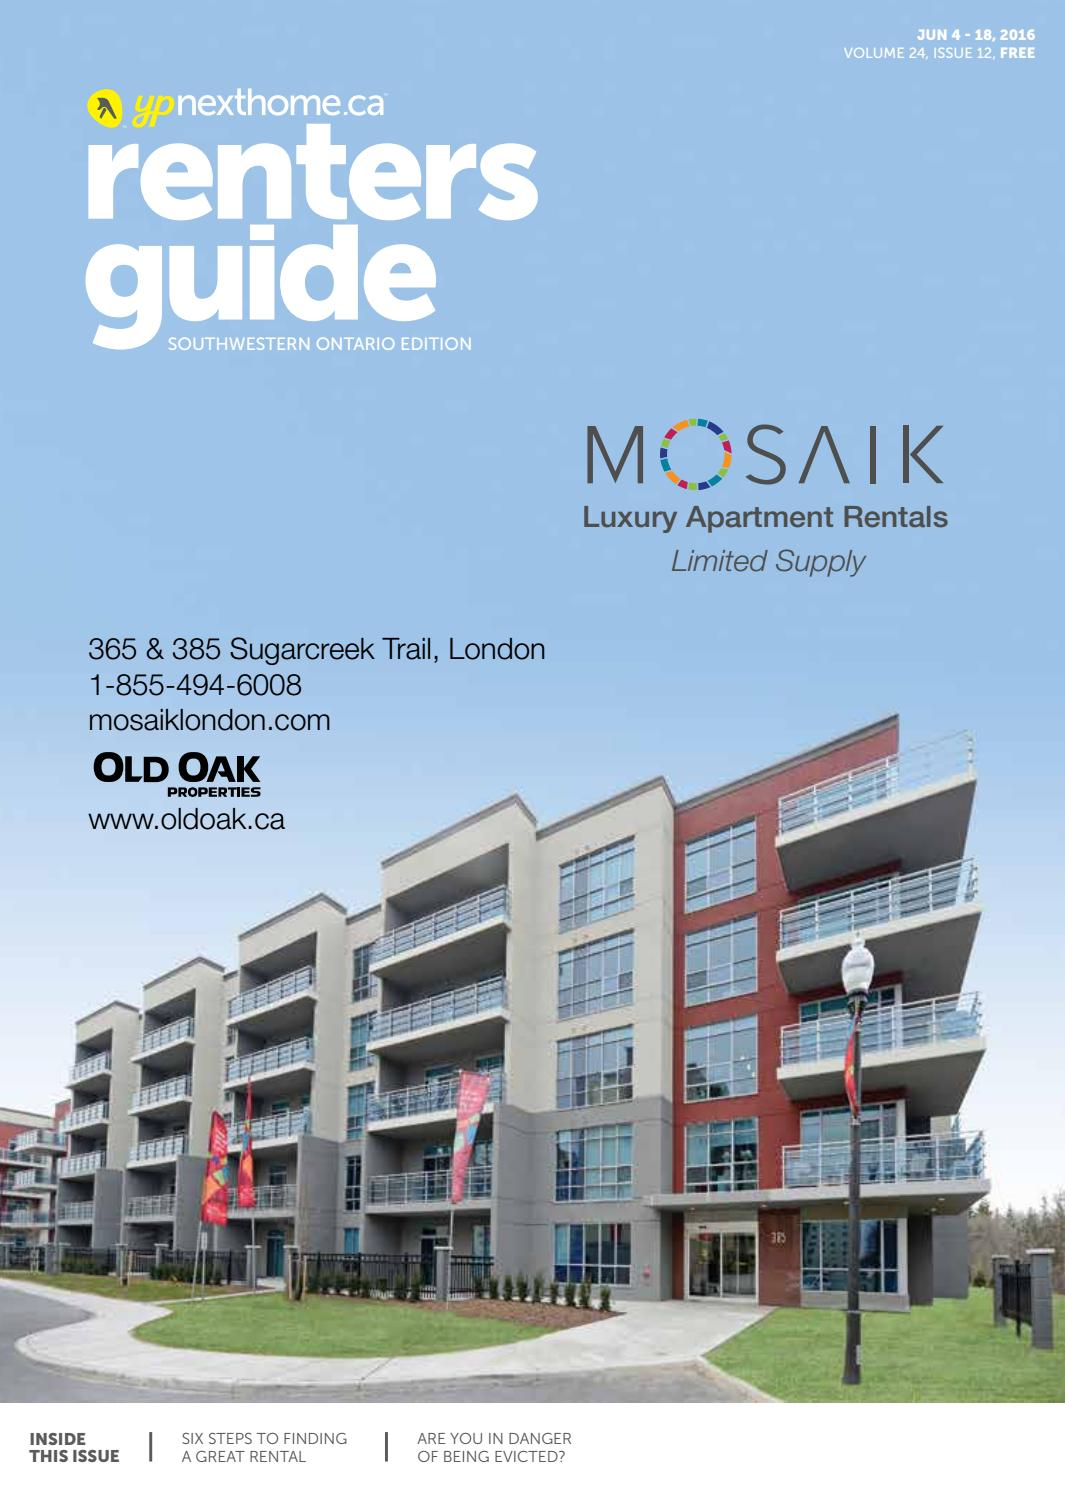 Southwestern Ontario Renters Guide - 4 Jun, 2016 by NextHome - issuu